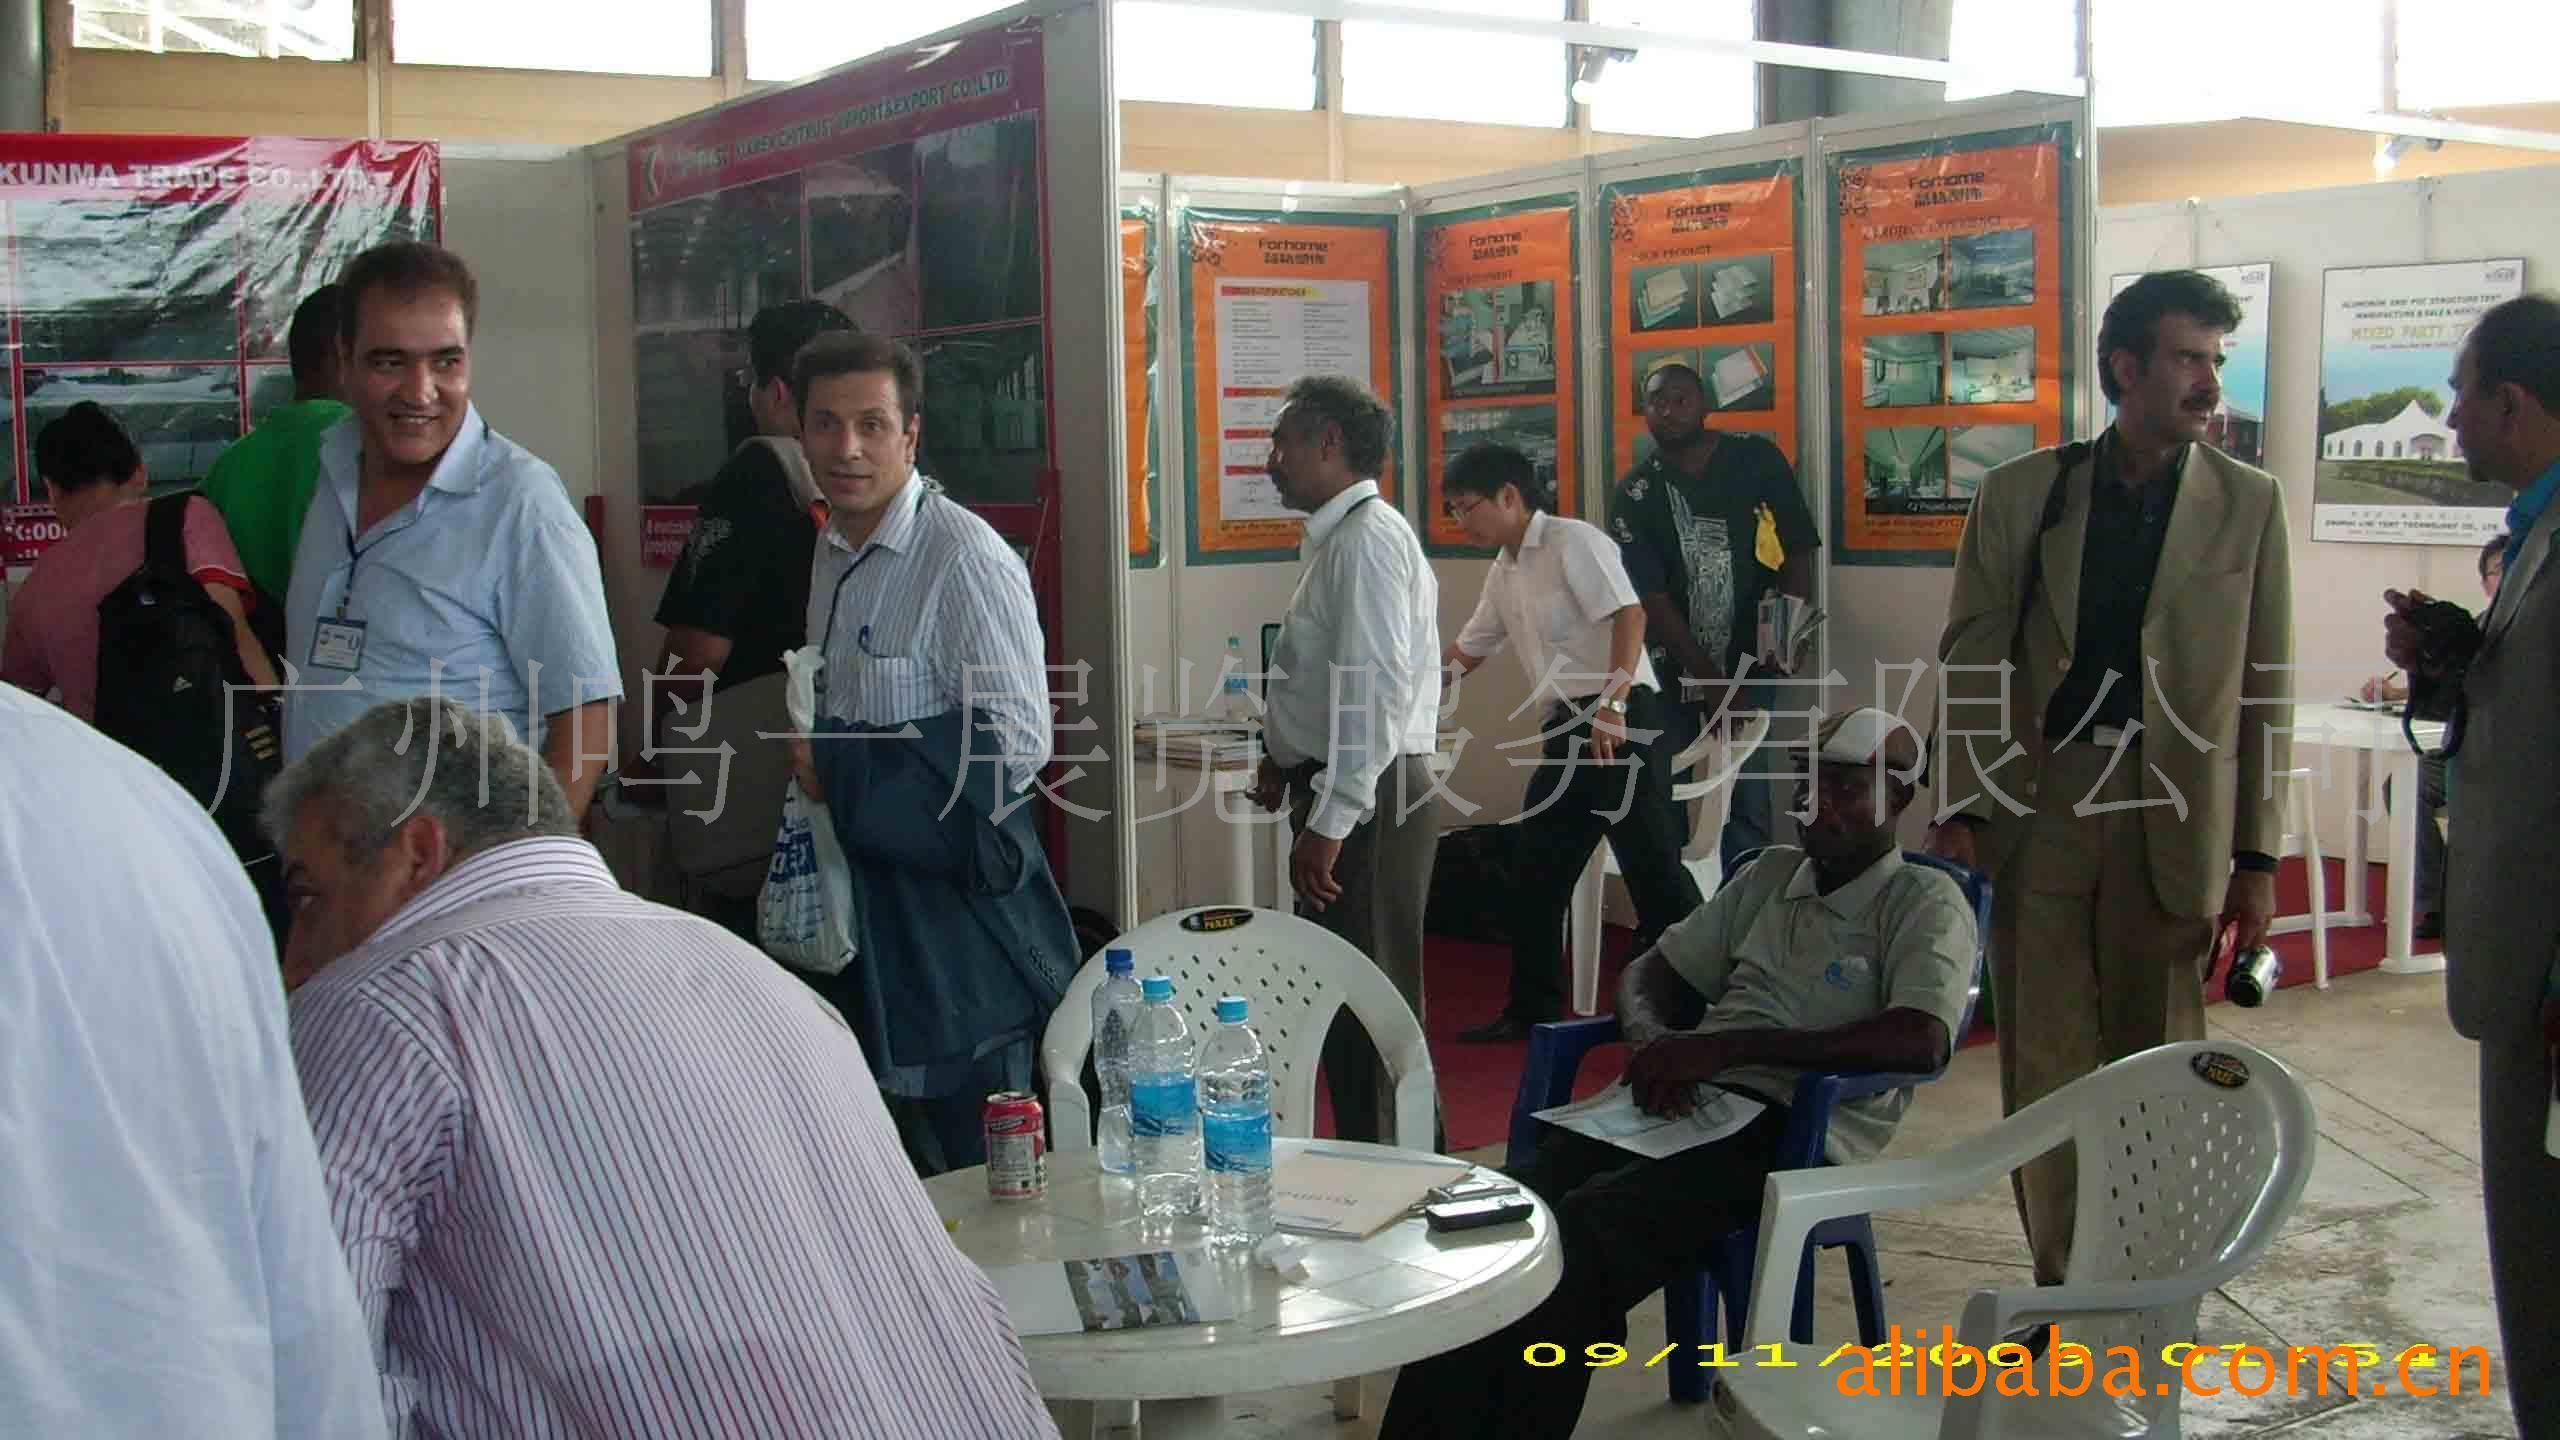 2010 International Building and Construction Exposition Angola